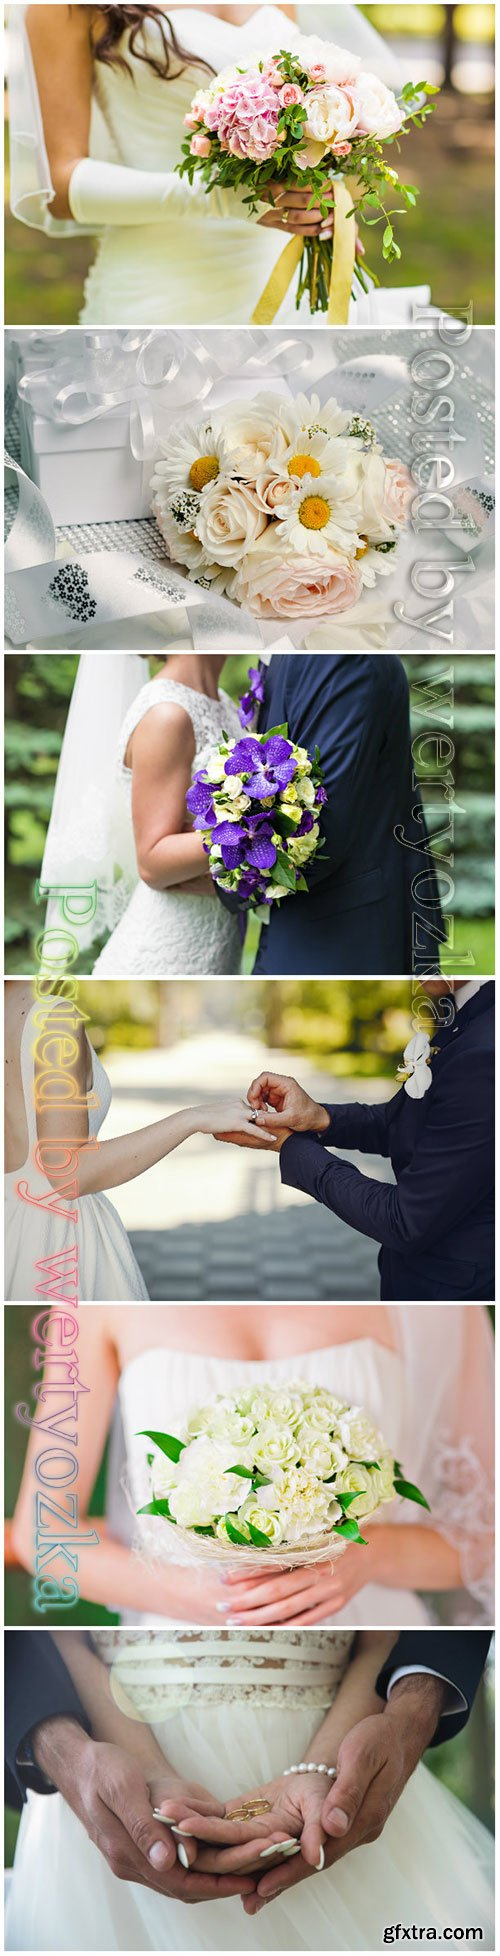 Wedding beautiful stock photo